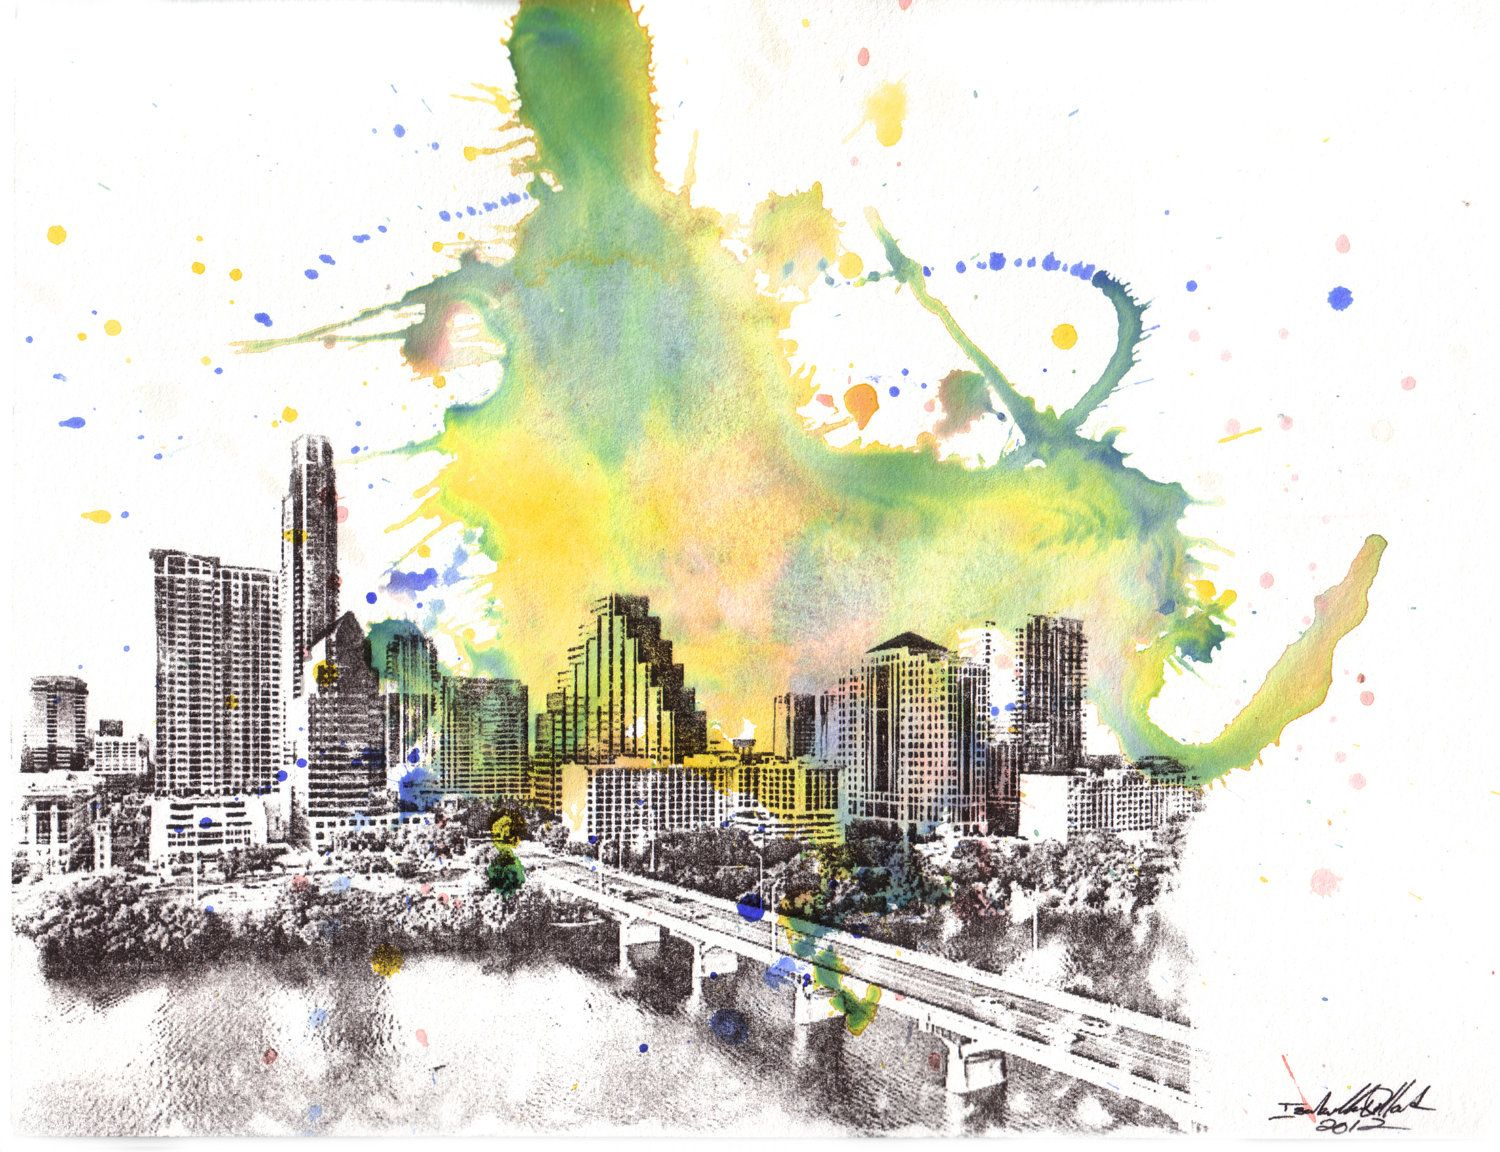 Austin Texas Cityscape Skyline Abstract Landscape Art Print From ...